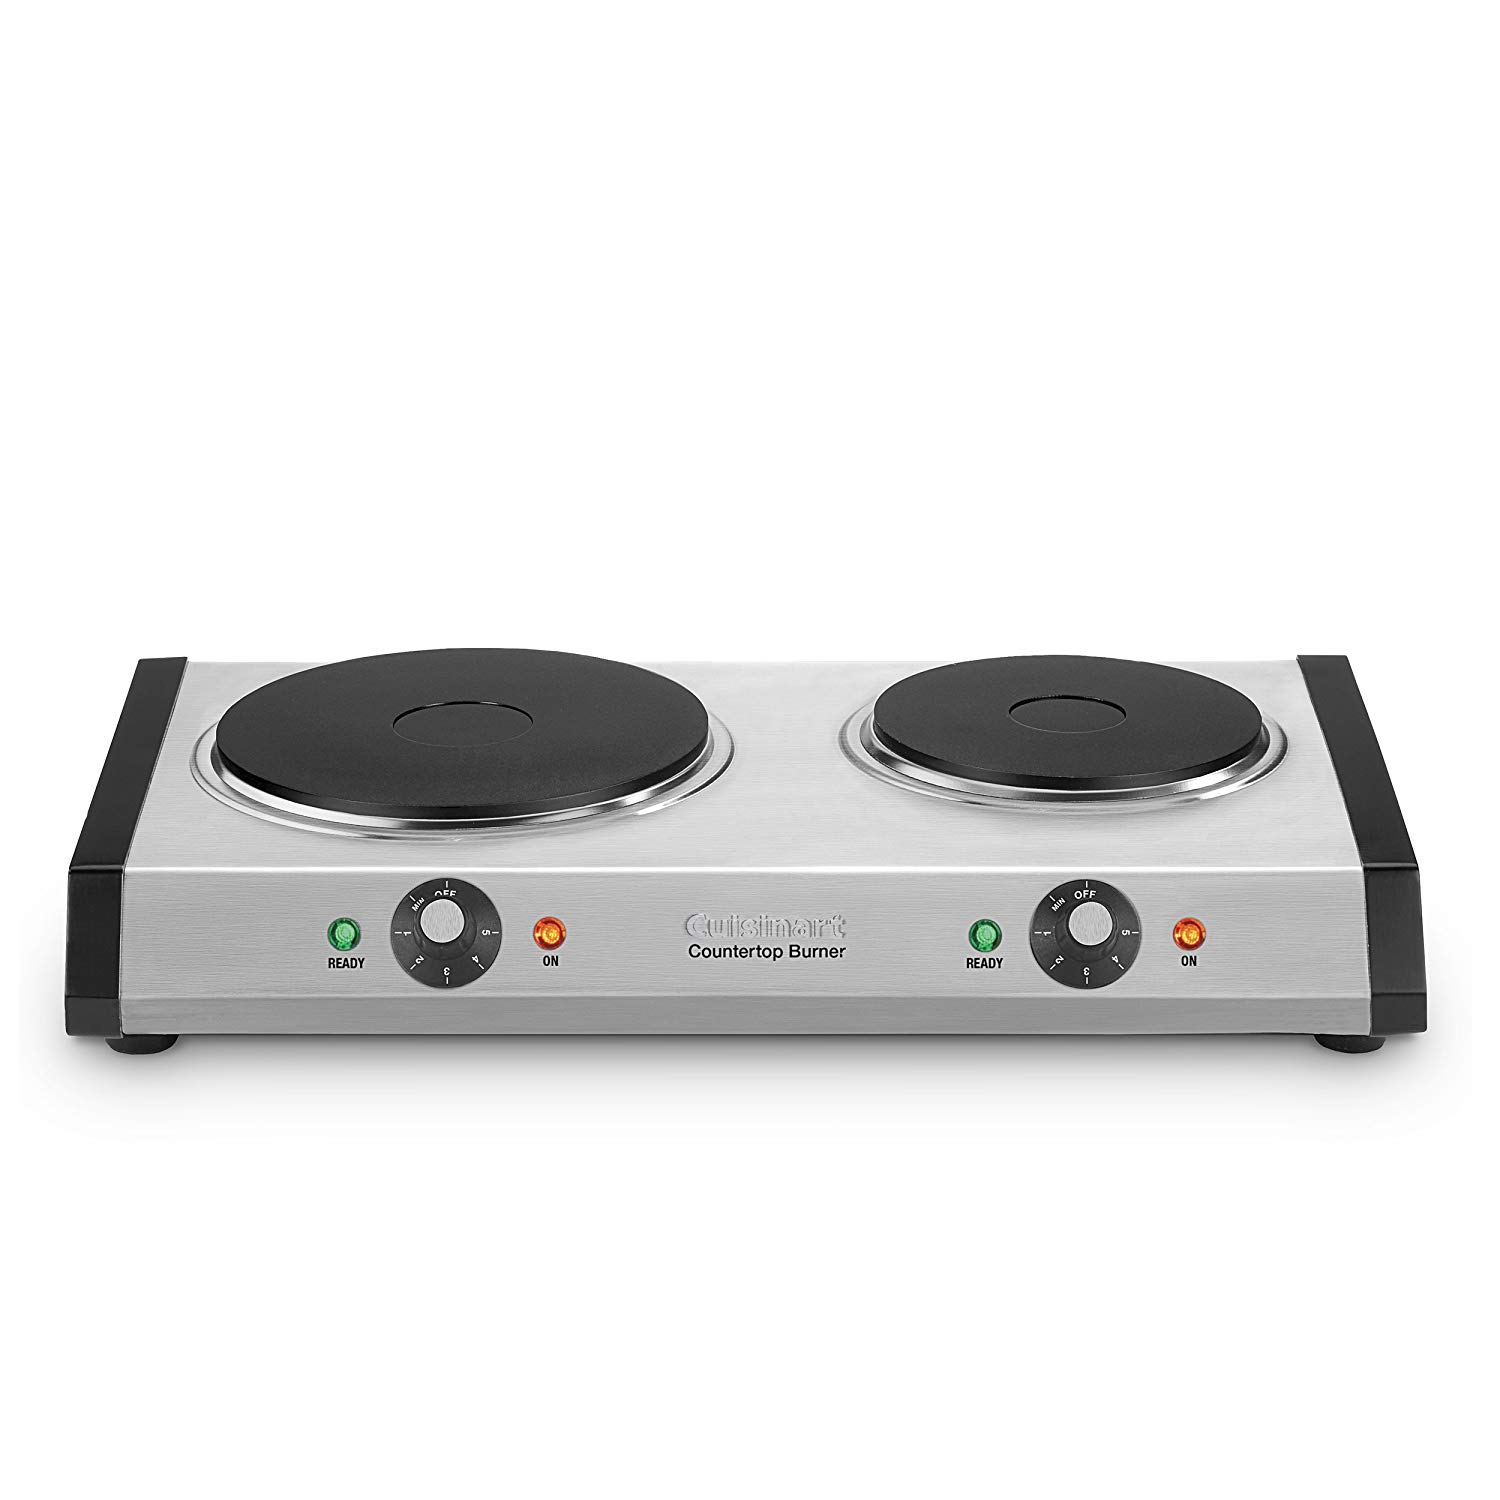 Cuisinart CB-60 Cast-Iron Double Burner - Portable Electric Stove Top